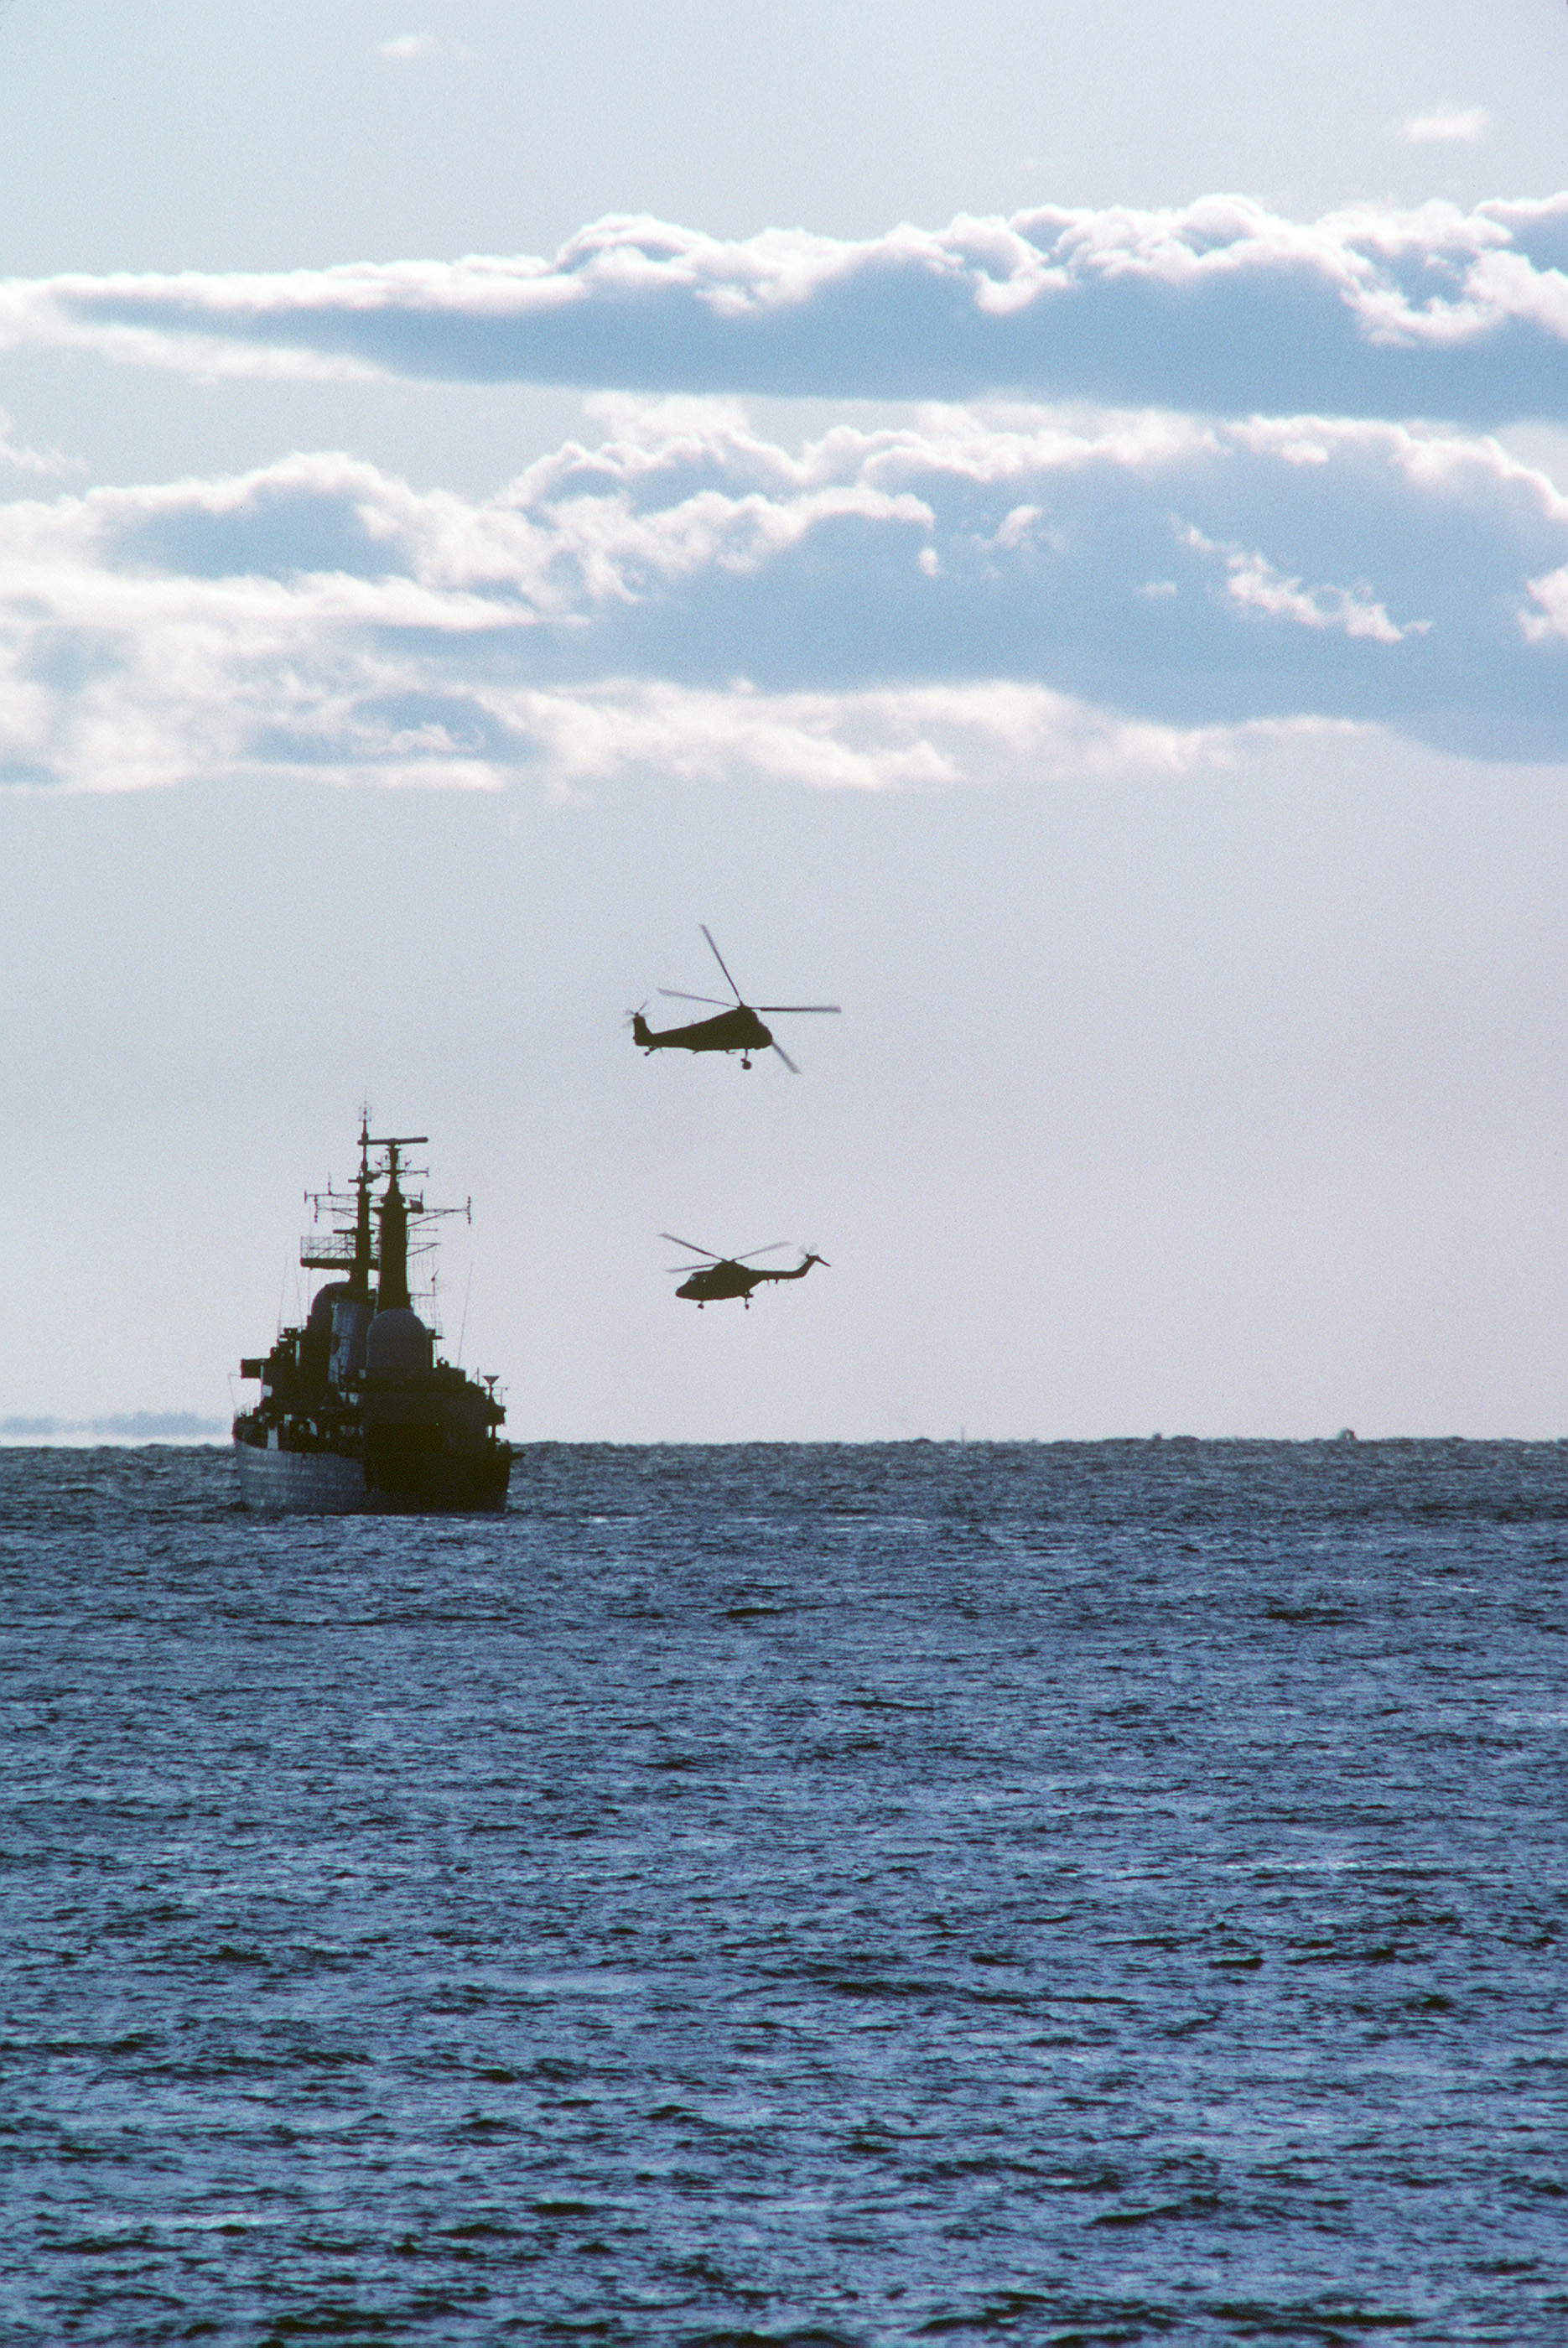 A silhouetted view of a NATO warship with two anti-submarine warfare helicopters flying nearby during NATO Exercise NORTHERN WEDDING 86